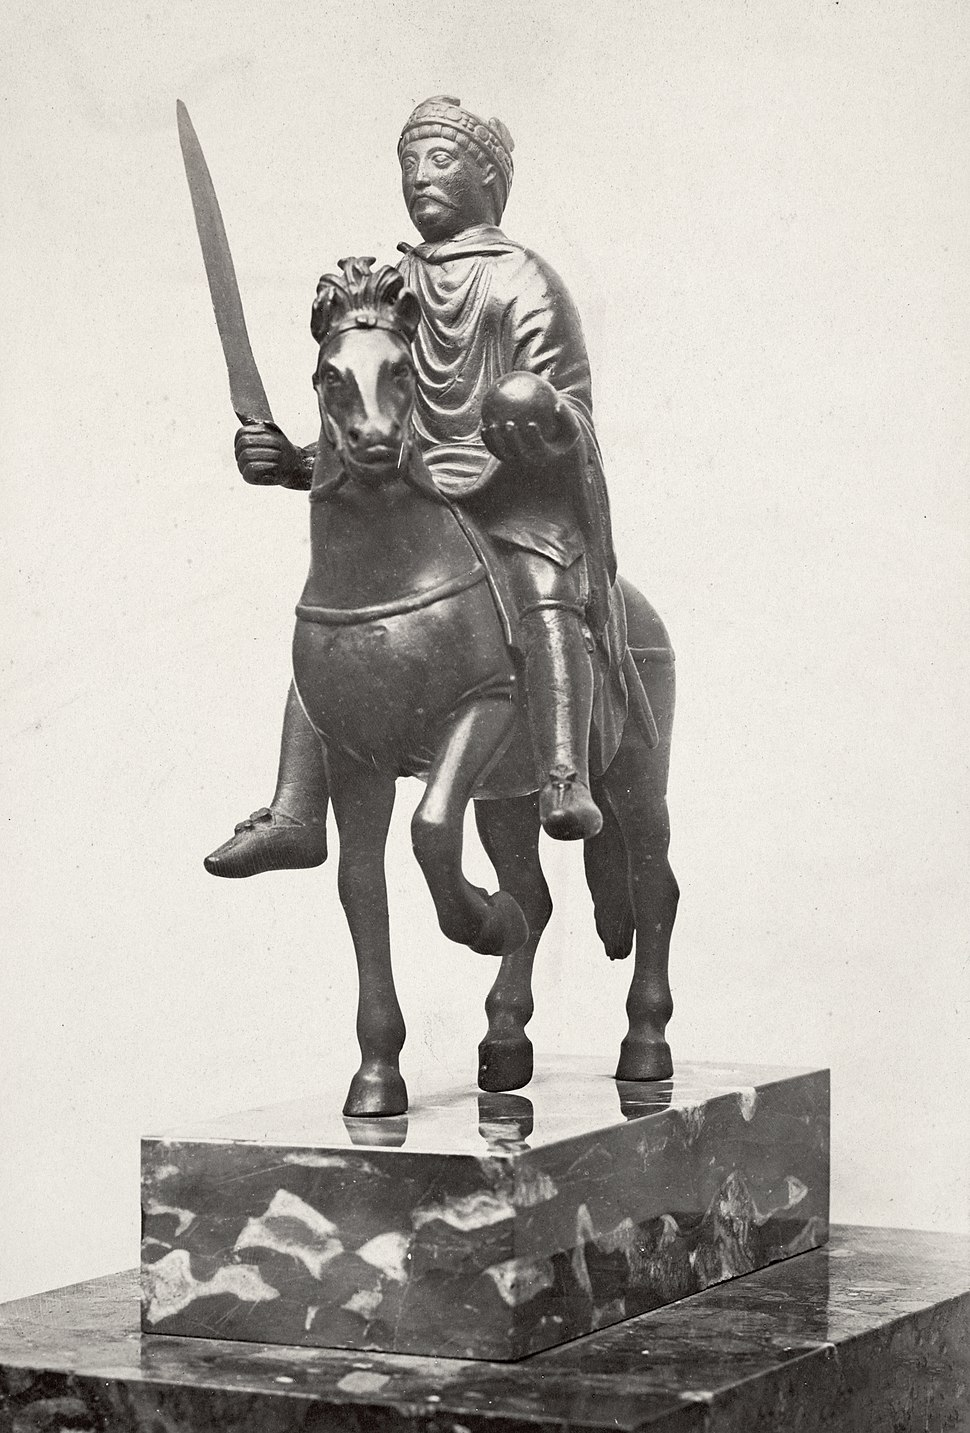 Charles Marville, H%C3%B4tel Carnavalet, statue of Charlemagne, ca. 1853%E2%80%9370